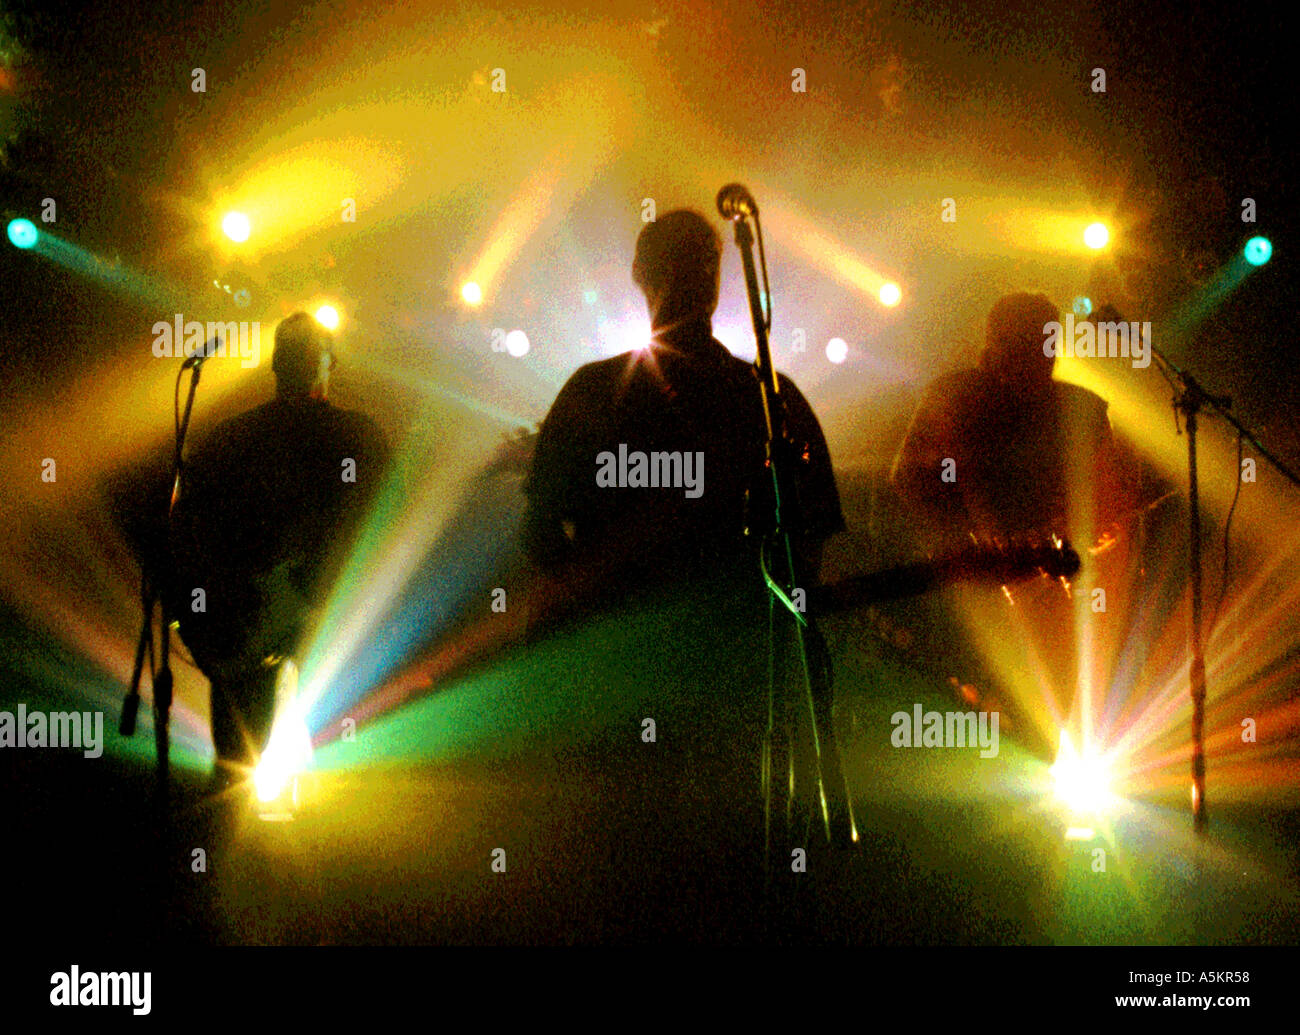 Silhouette of Floydian Slip playing Pink Floyd tribute with psychedelic stage lighting - Stock Image